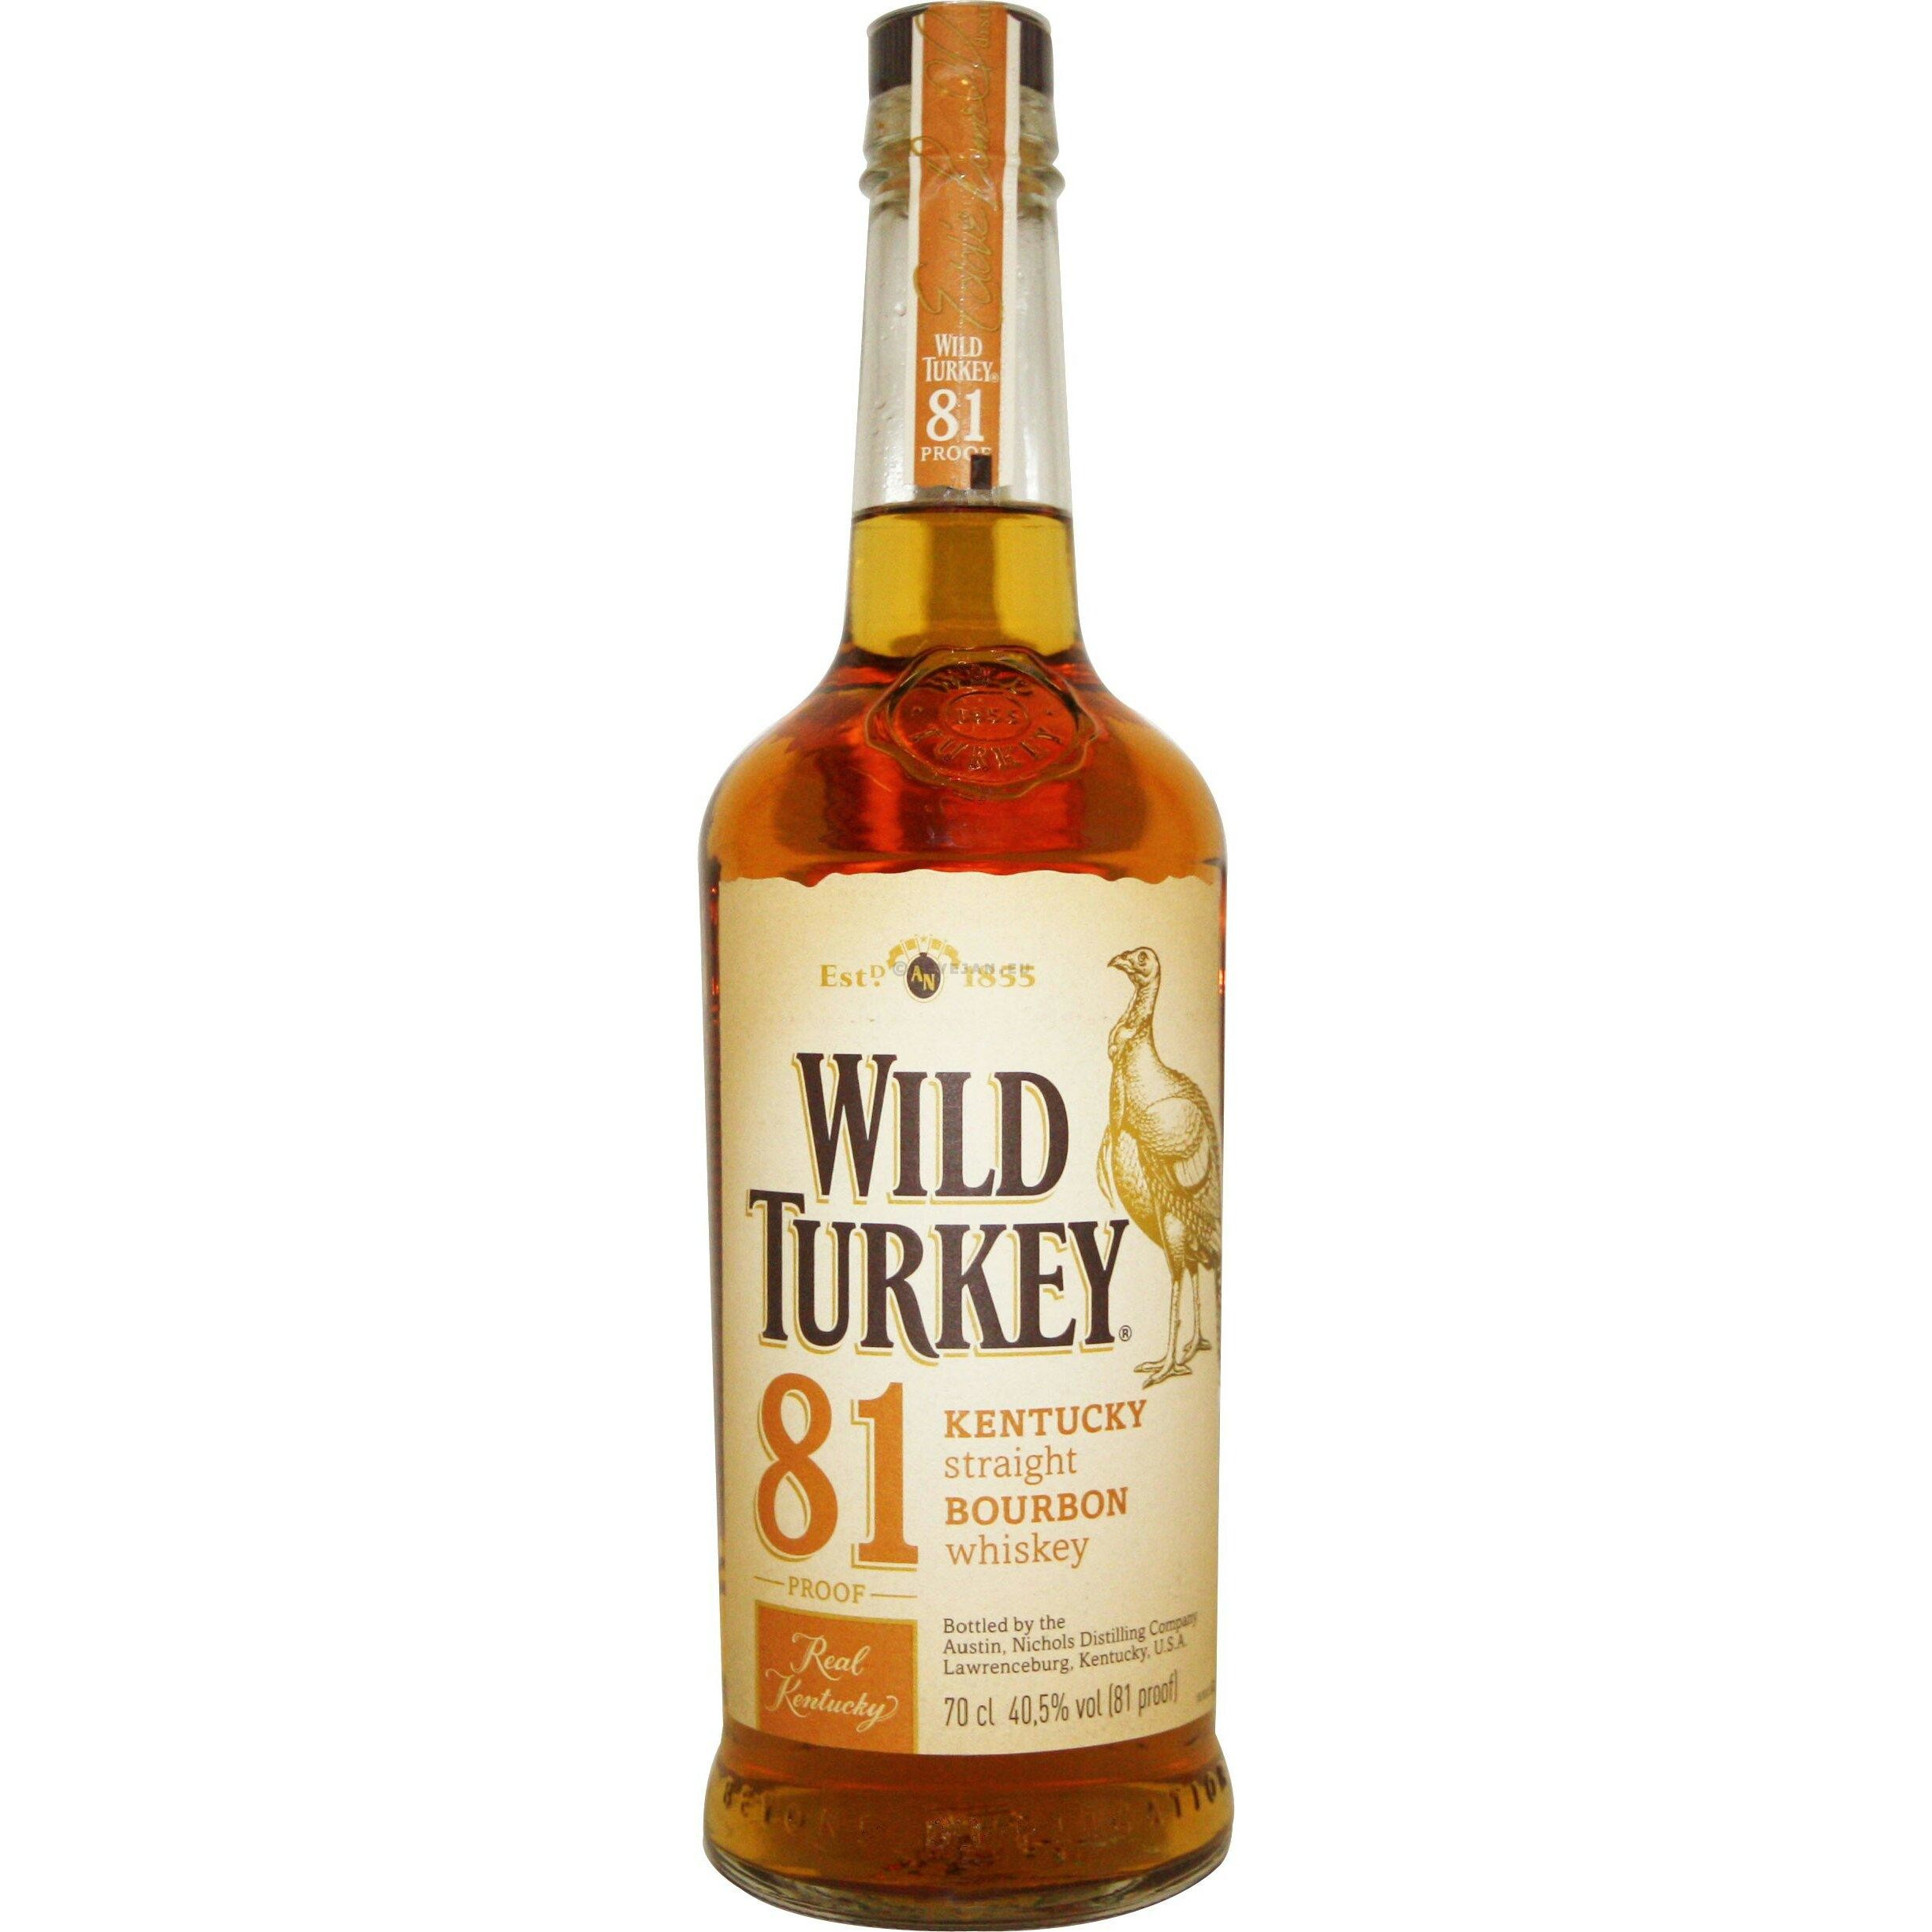 Wild Turkey 81 Proof 70cl 40.5% Kentucky Straight Bourbon Whiskey